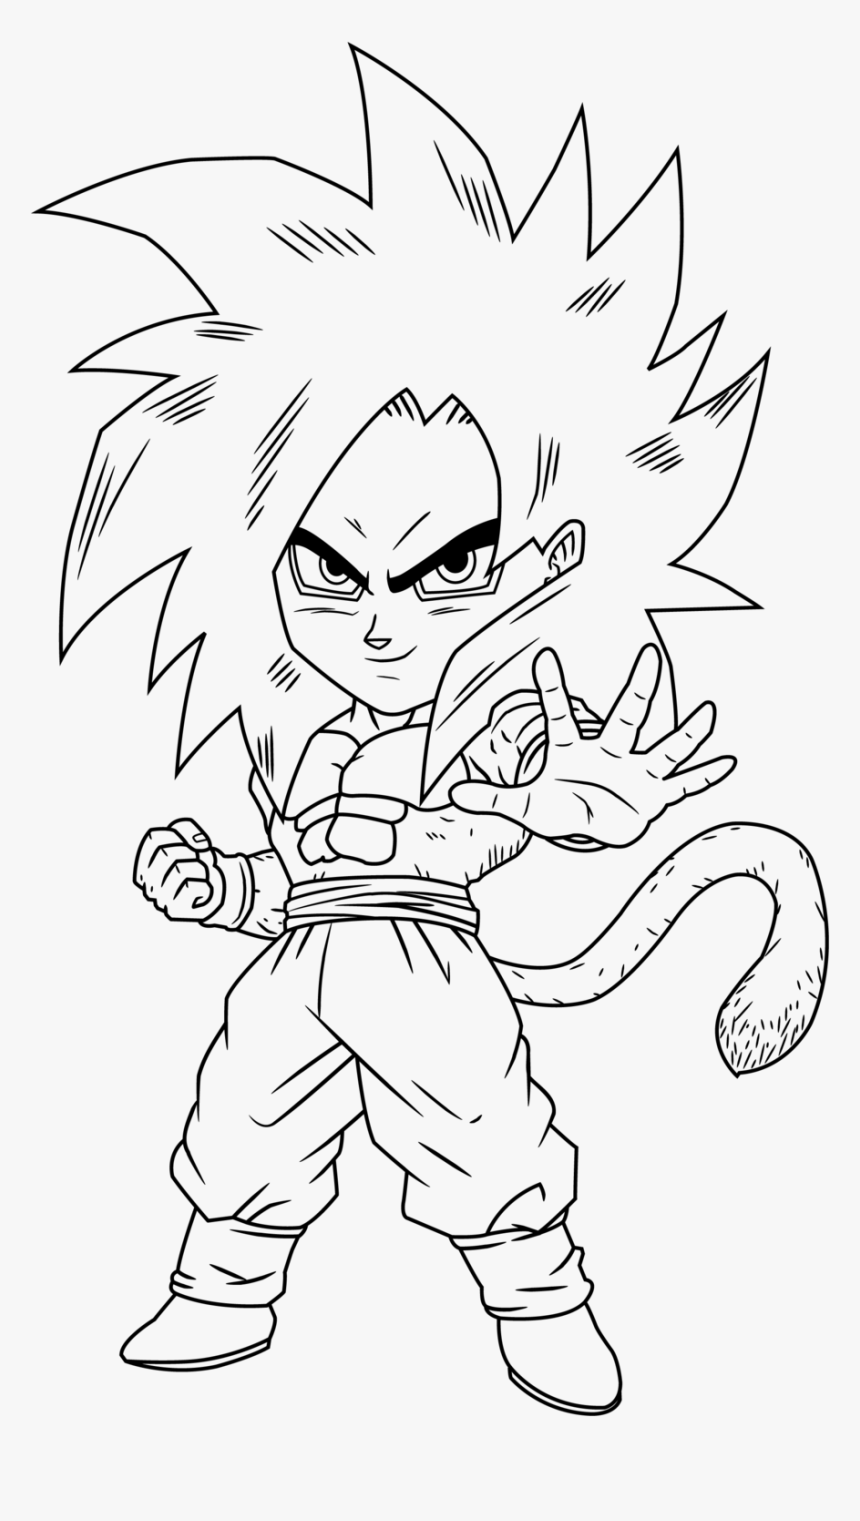 - Goku Ssj4 Coloring Pages - Goku Chibi Coloring Pages, HD Png